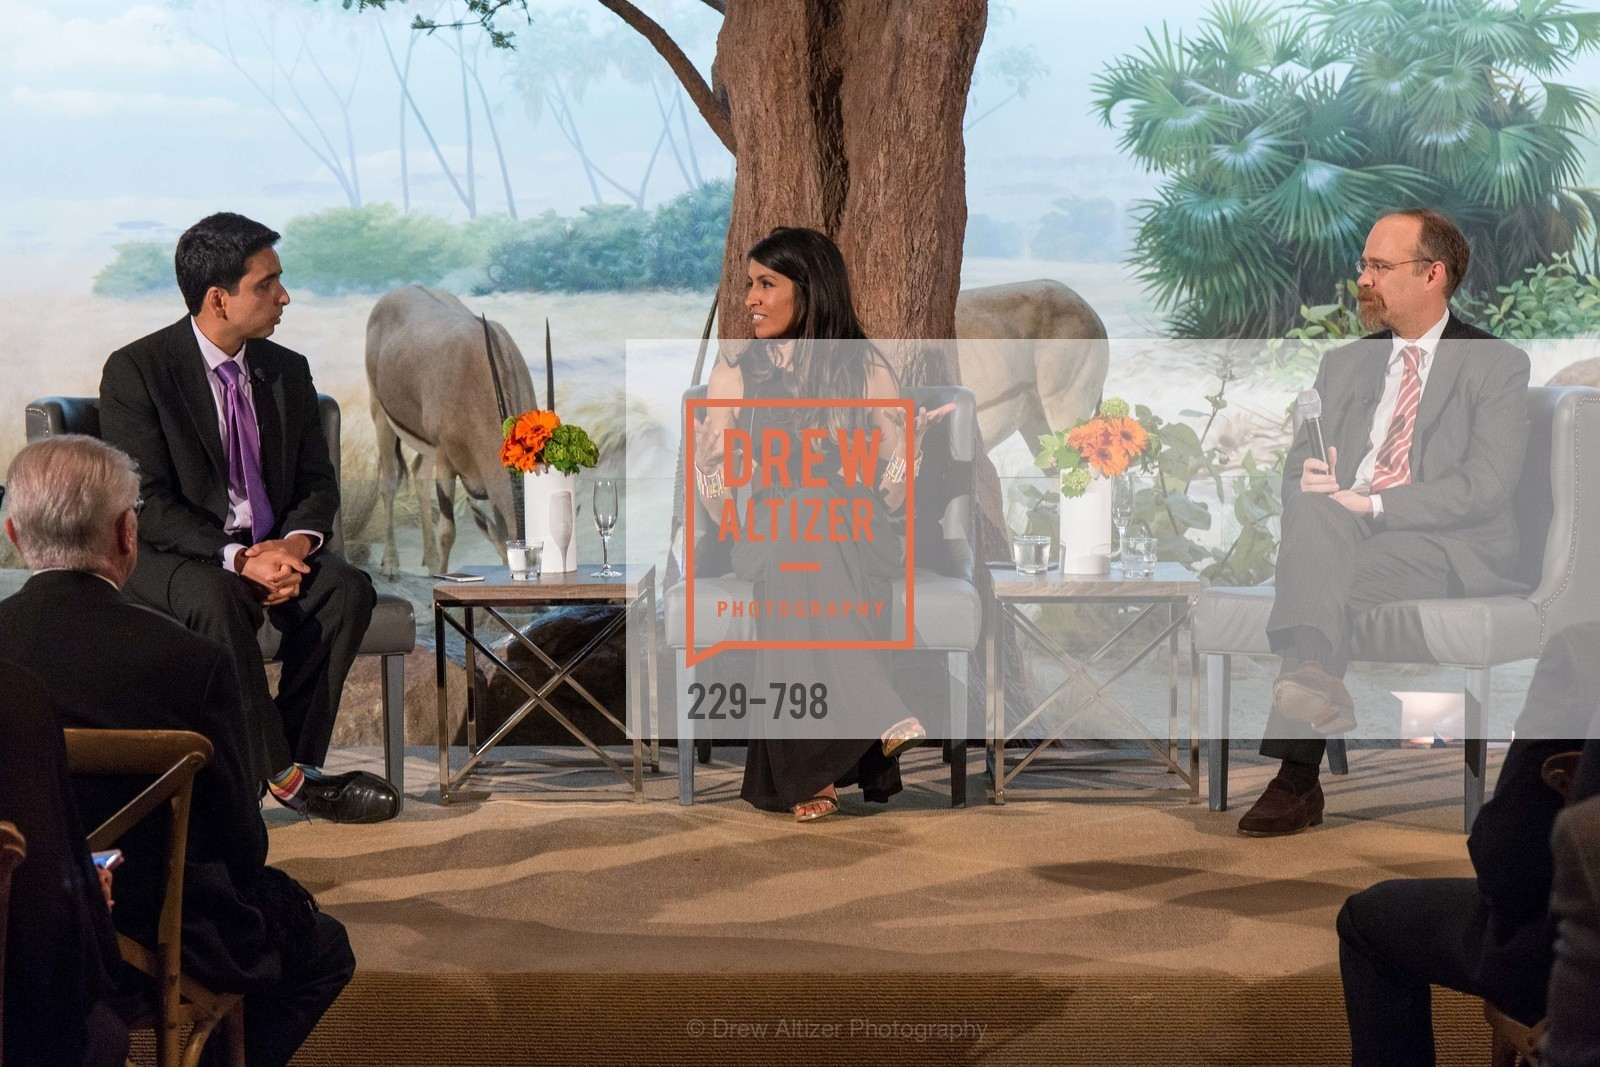 Sal Khan, Leila Janah, Adam Messinger, CALIFORNIA ACADEMY OF SCIENCES - Big Bang Gala 2015, US, April 24th, 2015,Drew Altizer, Drew Altizer Photography, full-service agency, private events, San Francisco photographer, photographer california